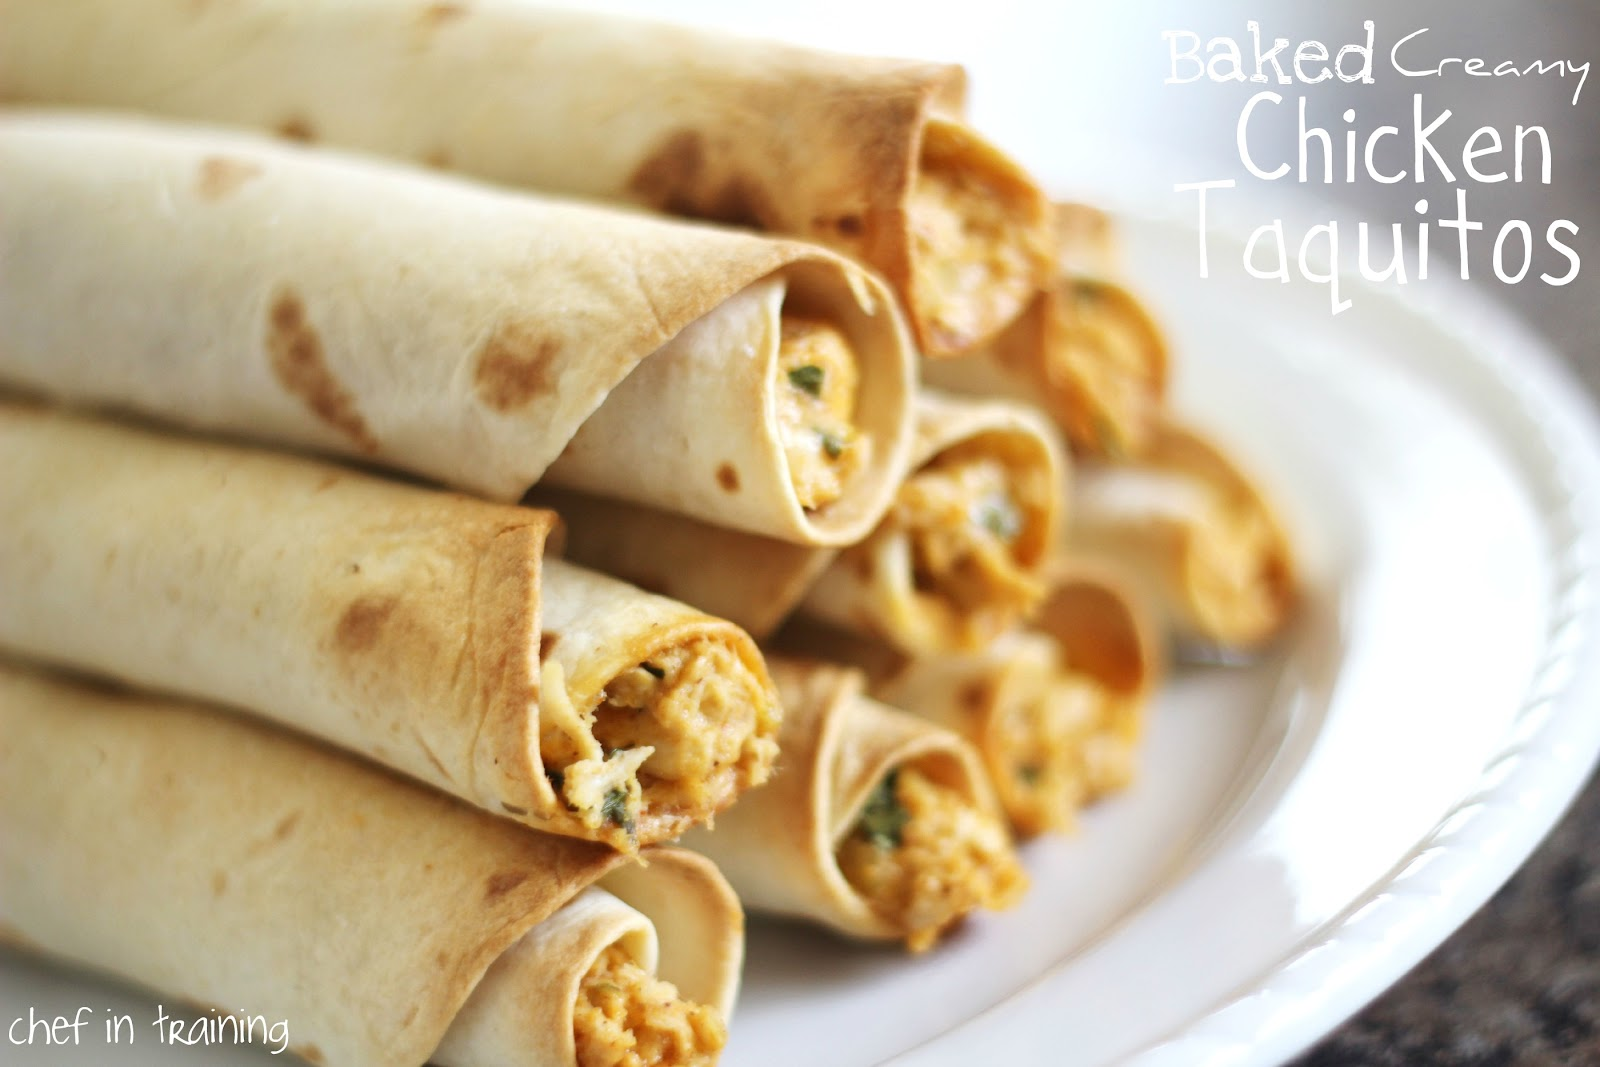 Baked Creamy Chicken Taquitos - Chef in Training